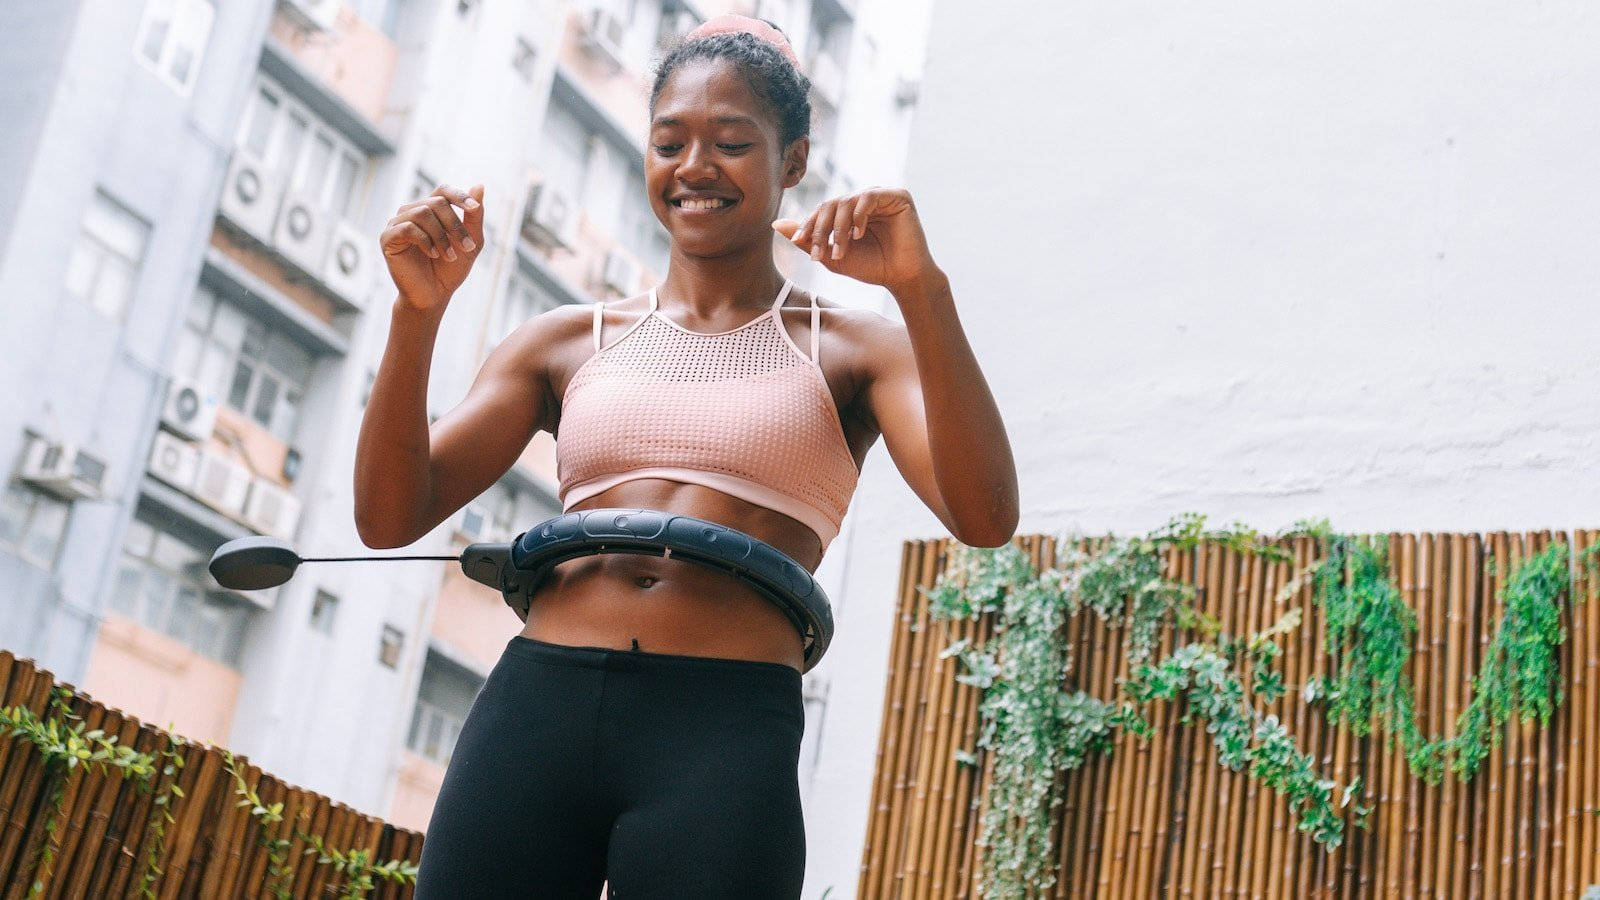 Most unusual fitness gadgets to buy